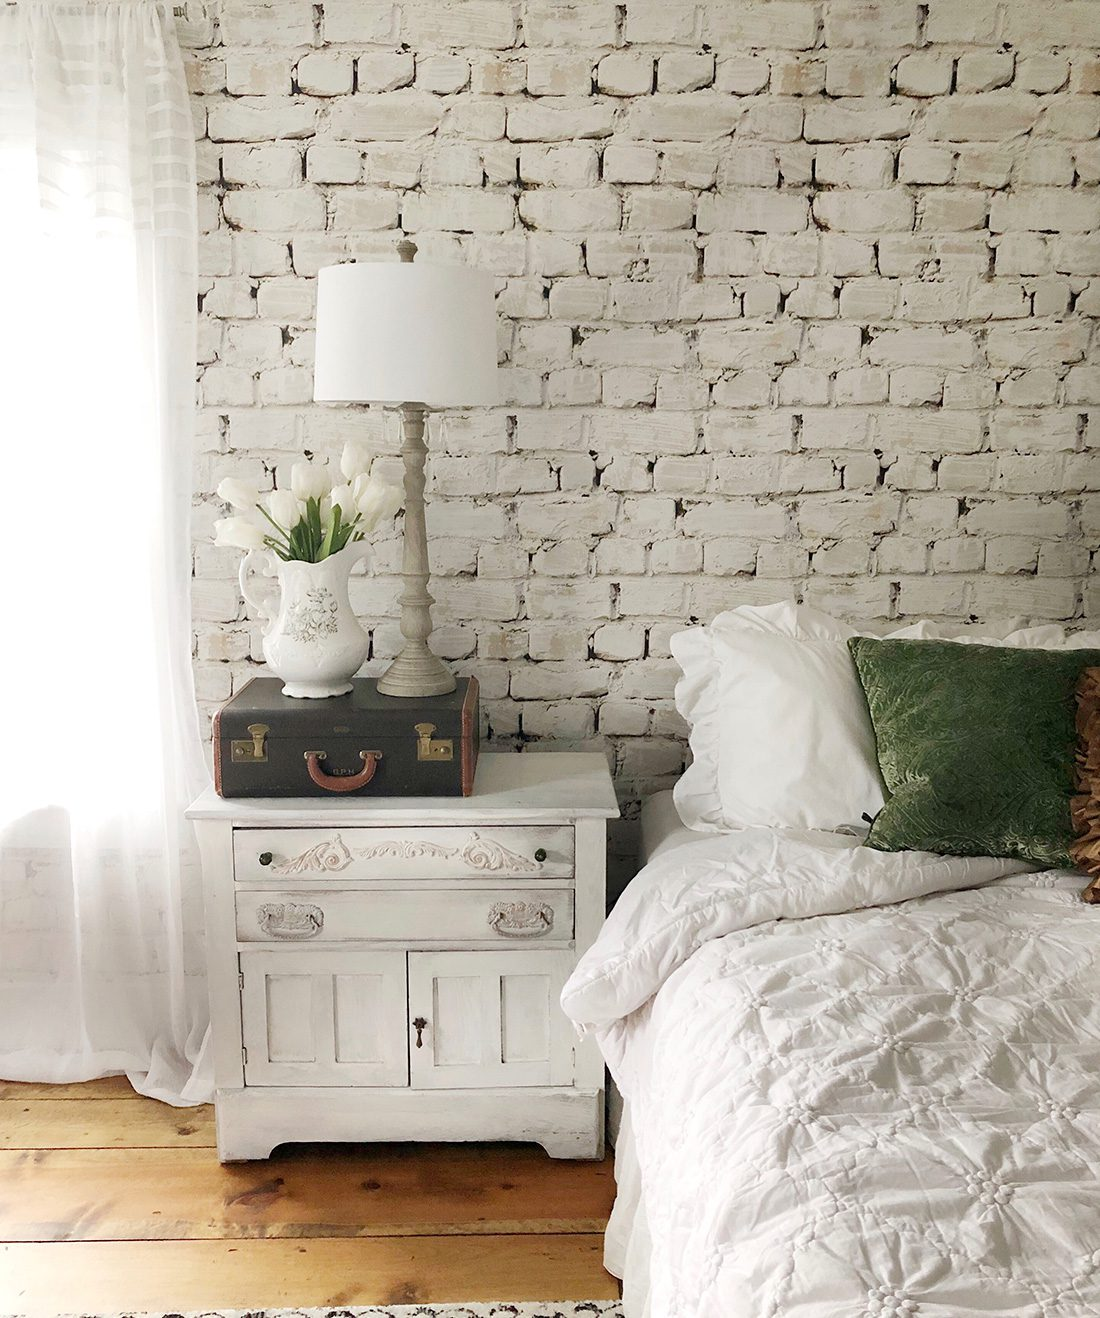 Whitewash Brick Wallpaper • White Brick Wallpaper